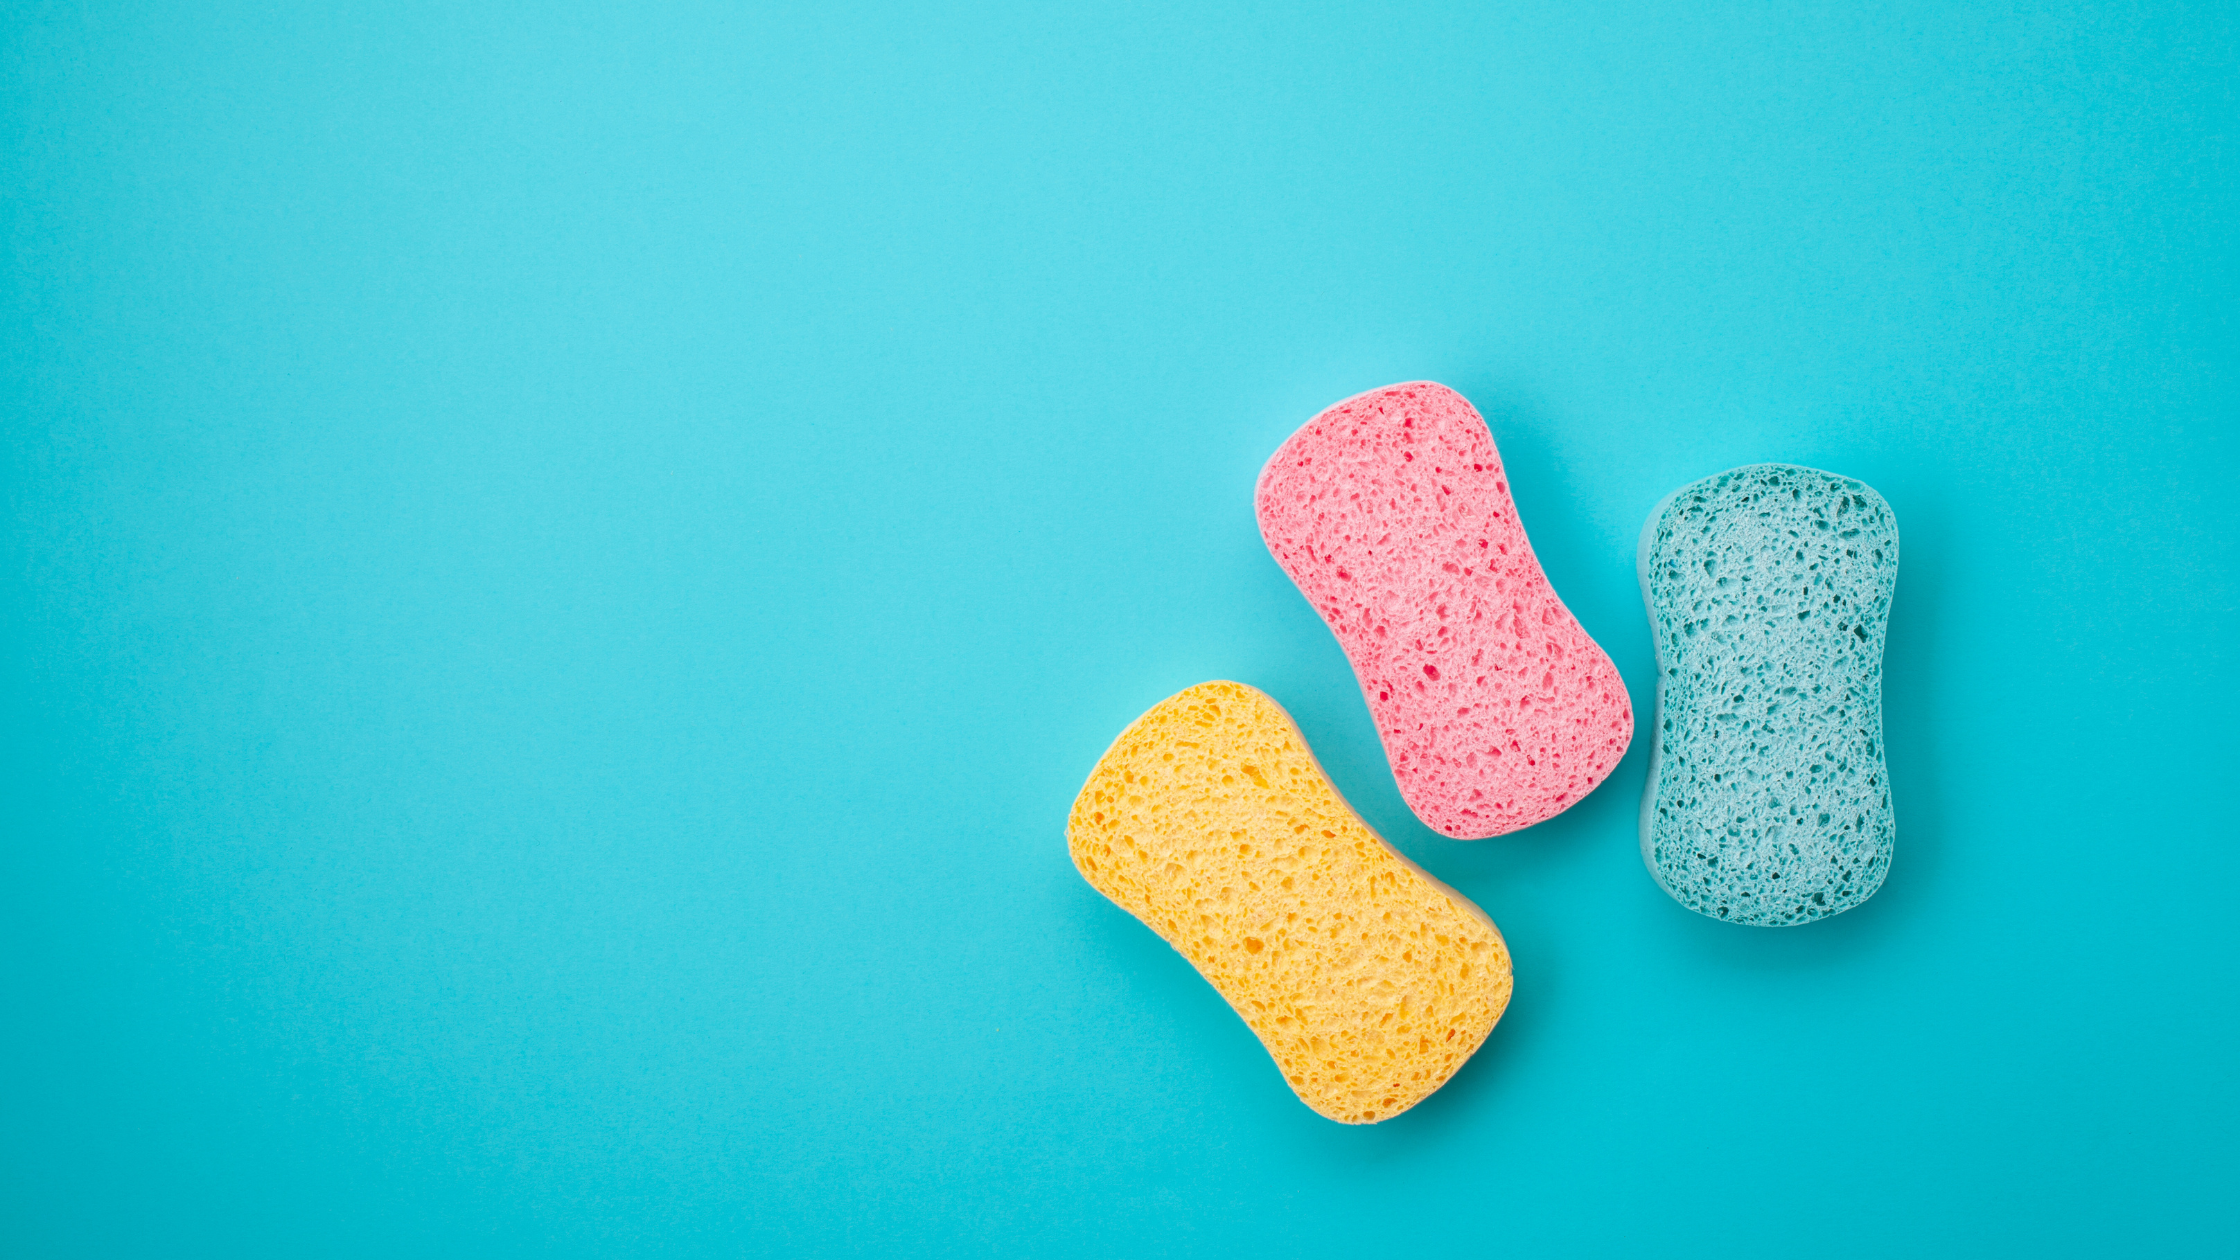 teal background with three sponges that are yellow, pink, and blue